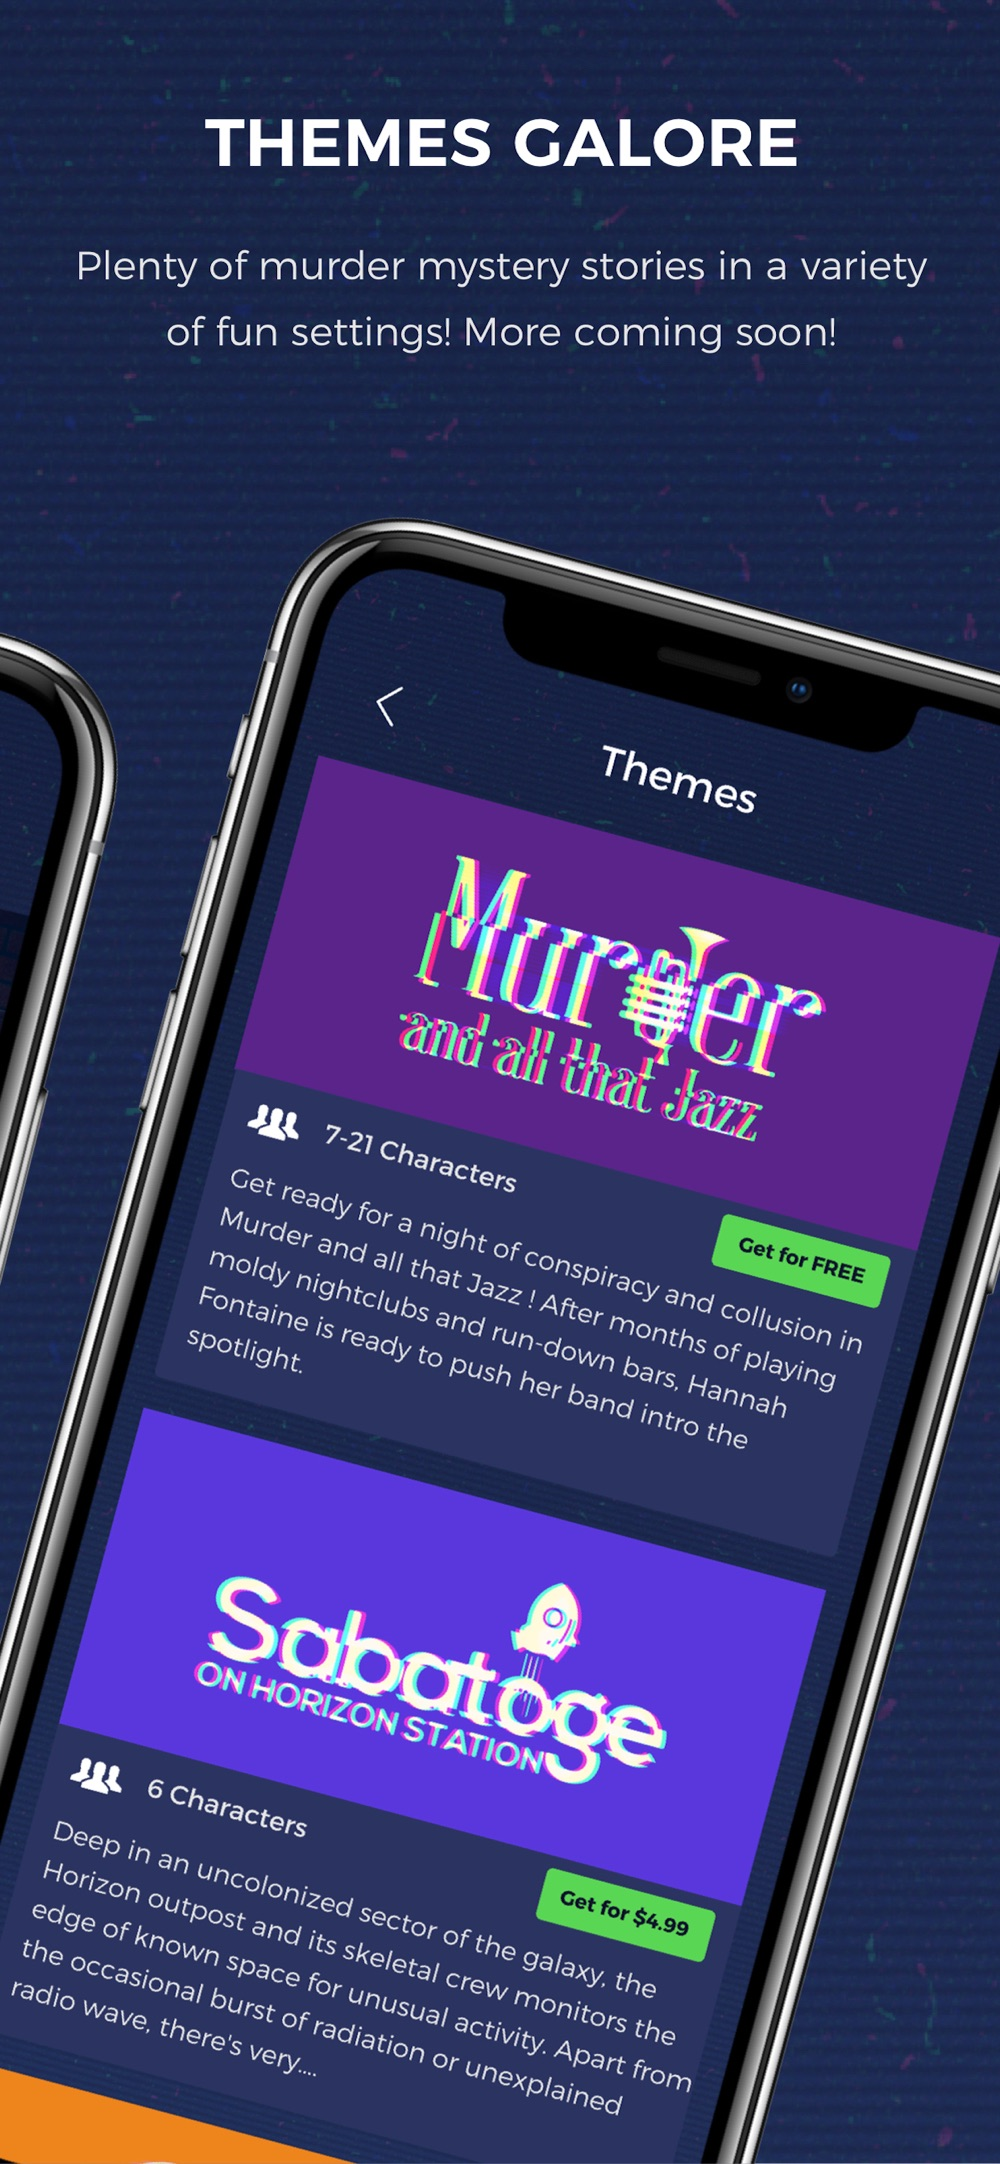 Whodunnit: Murder Mystery Game hack tool